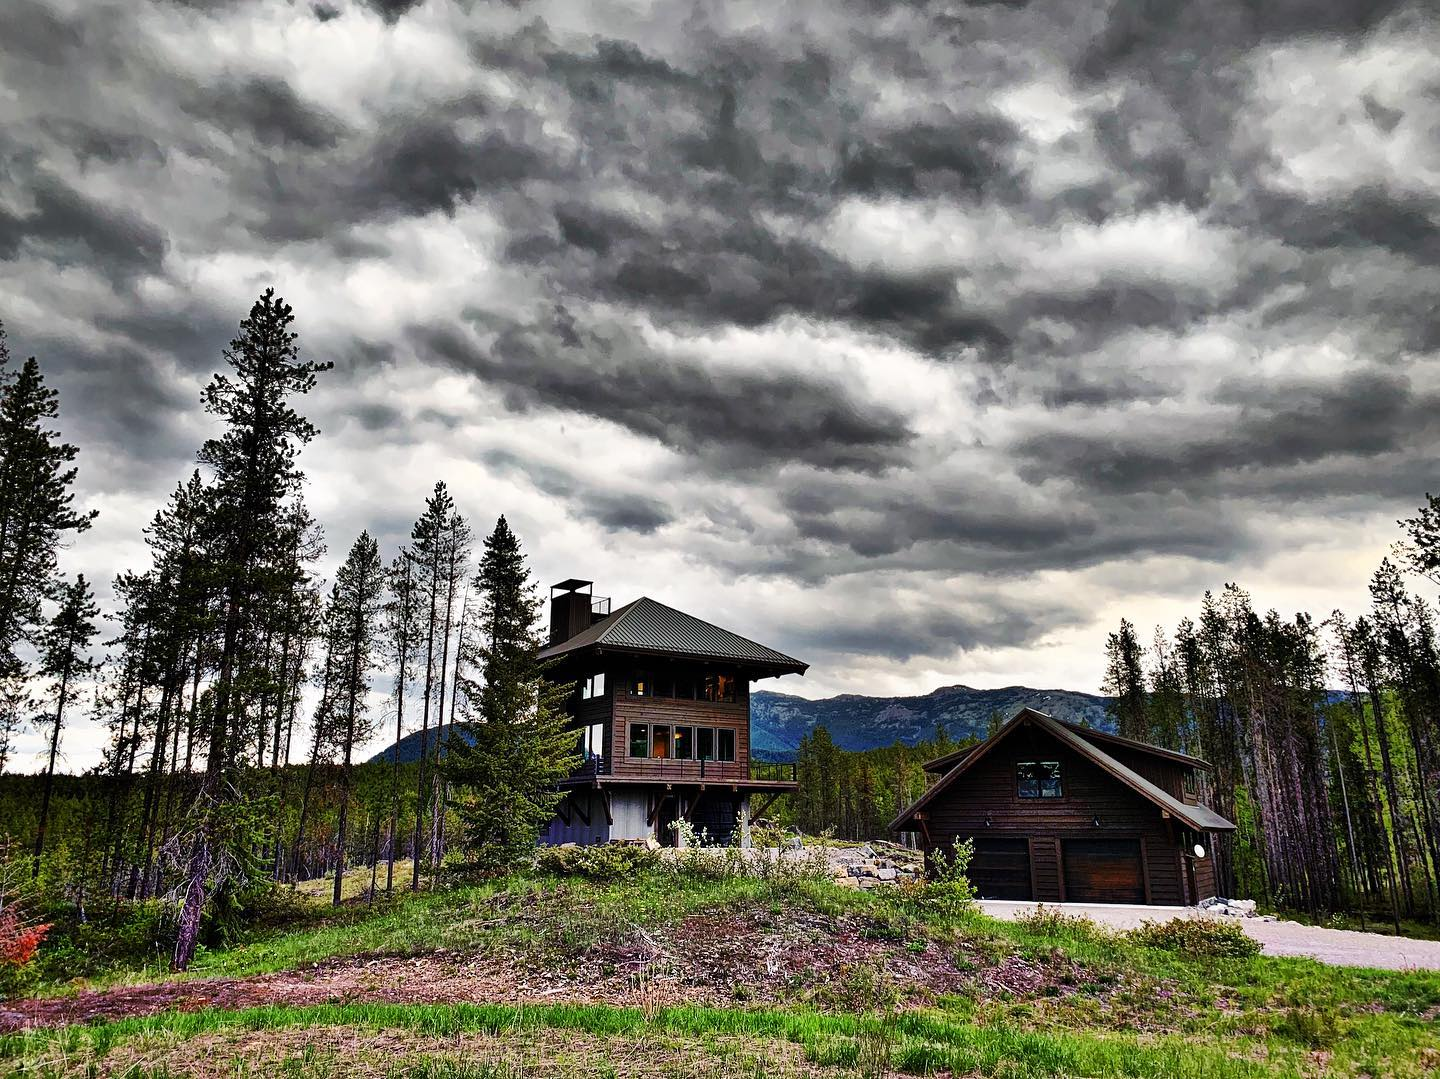 Crazy lighting this morning at the Lookout...hello spring! whitefish custom home builder